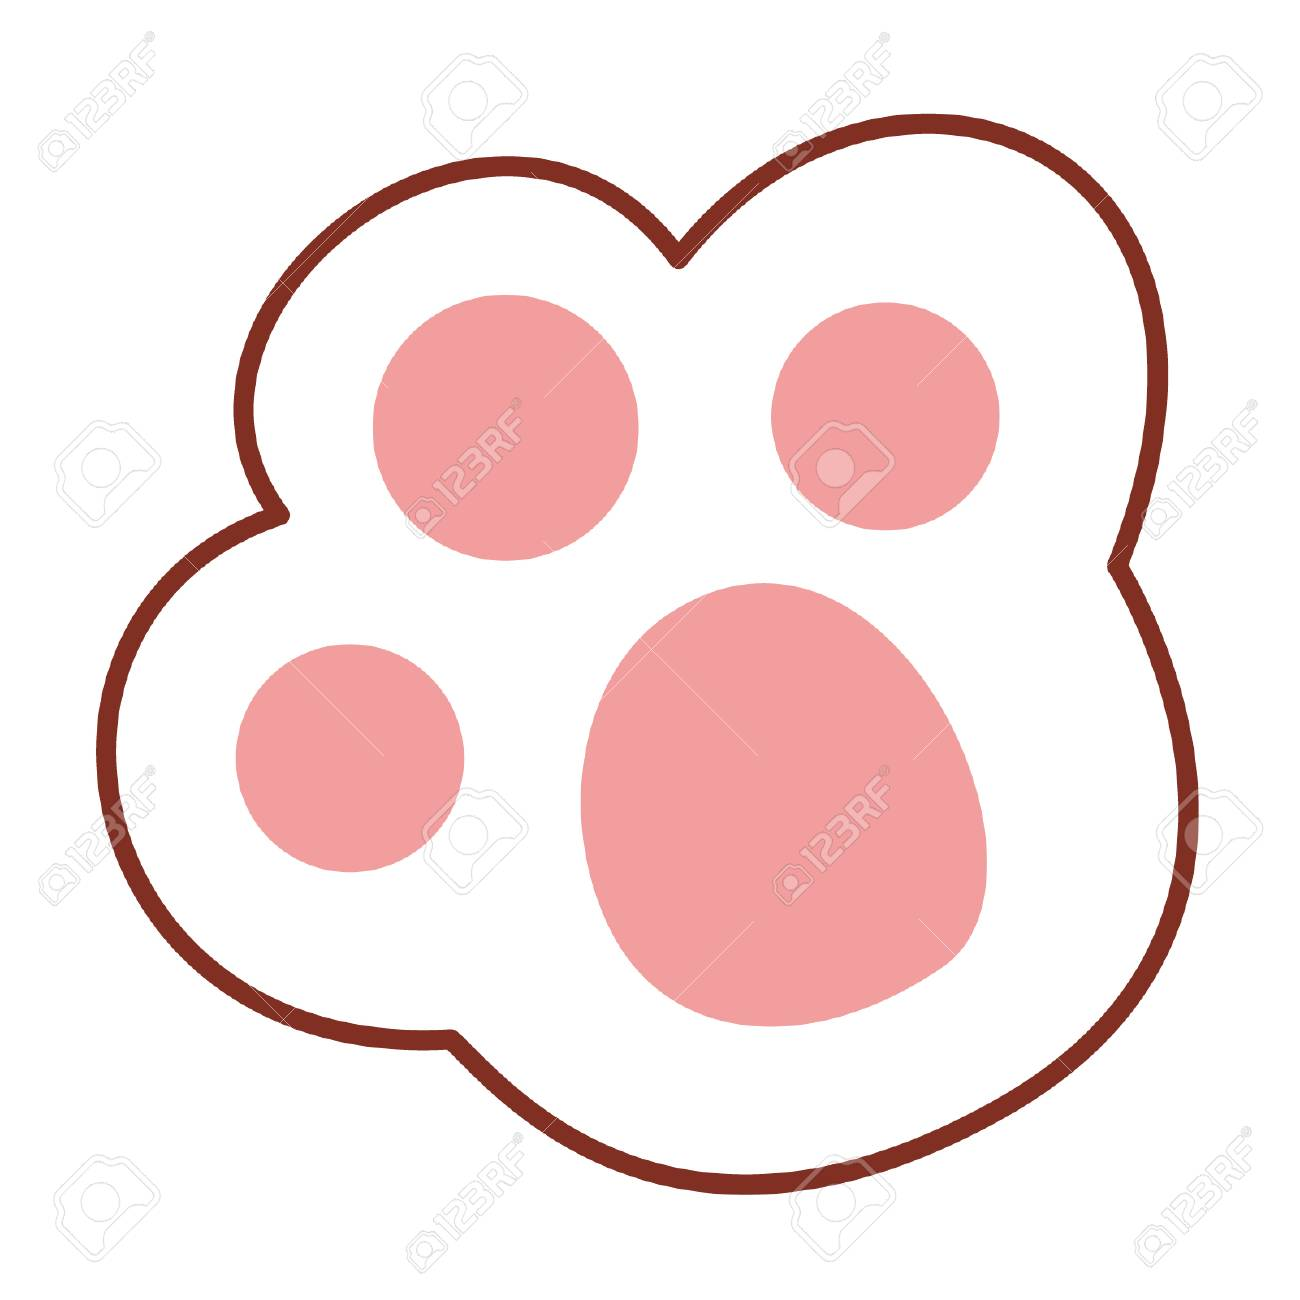 cartoon paw print royalty free cliparts, vectors, and stock illustration.  image 96380634.  123rf